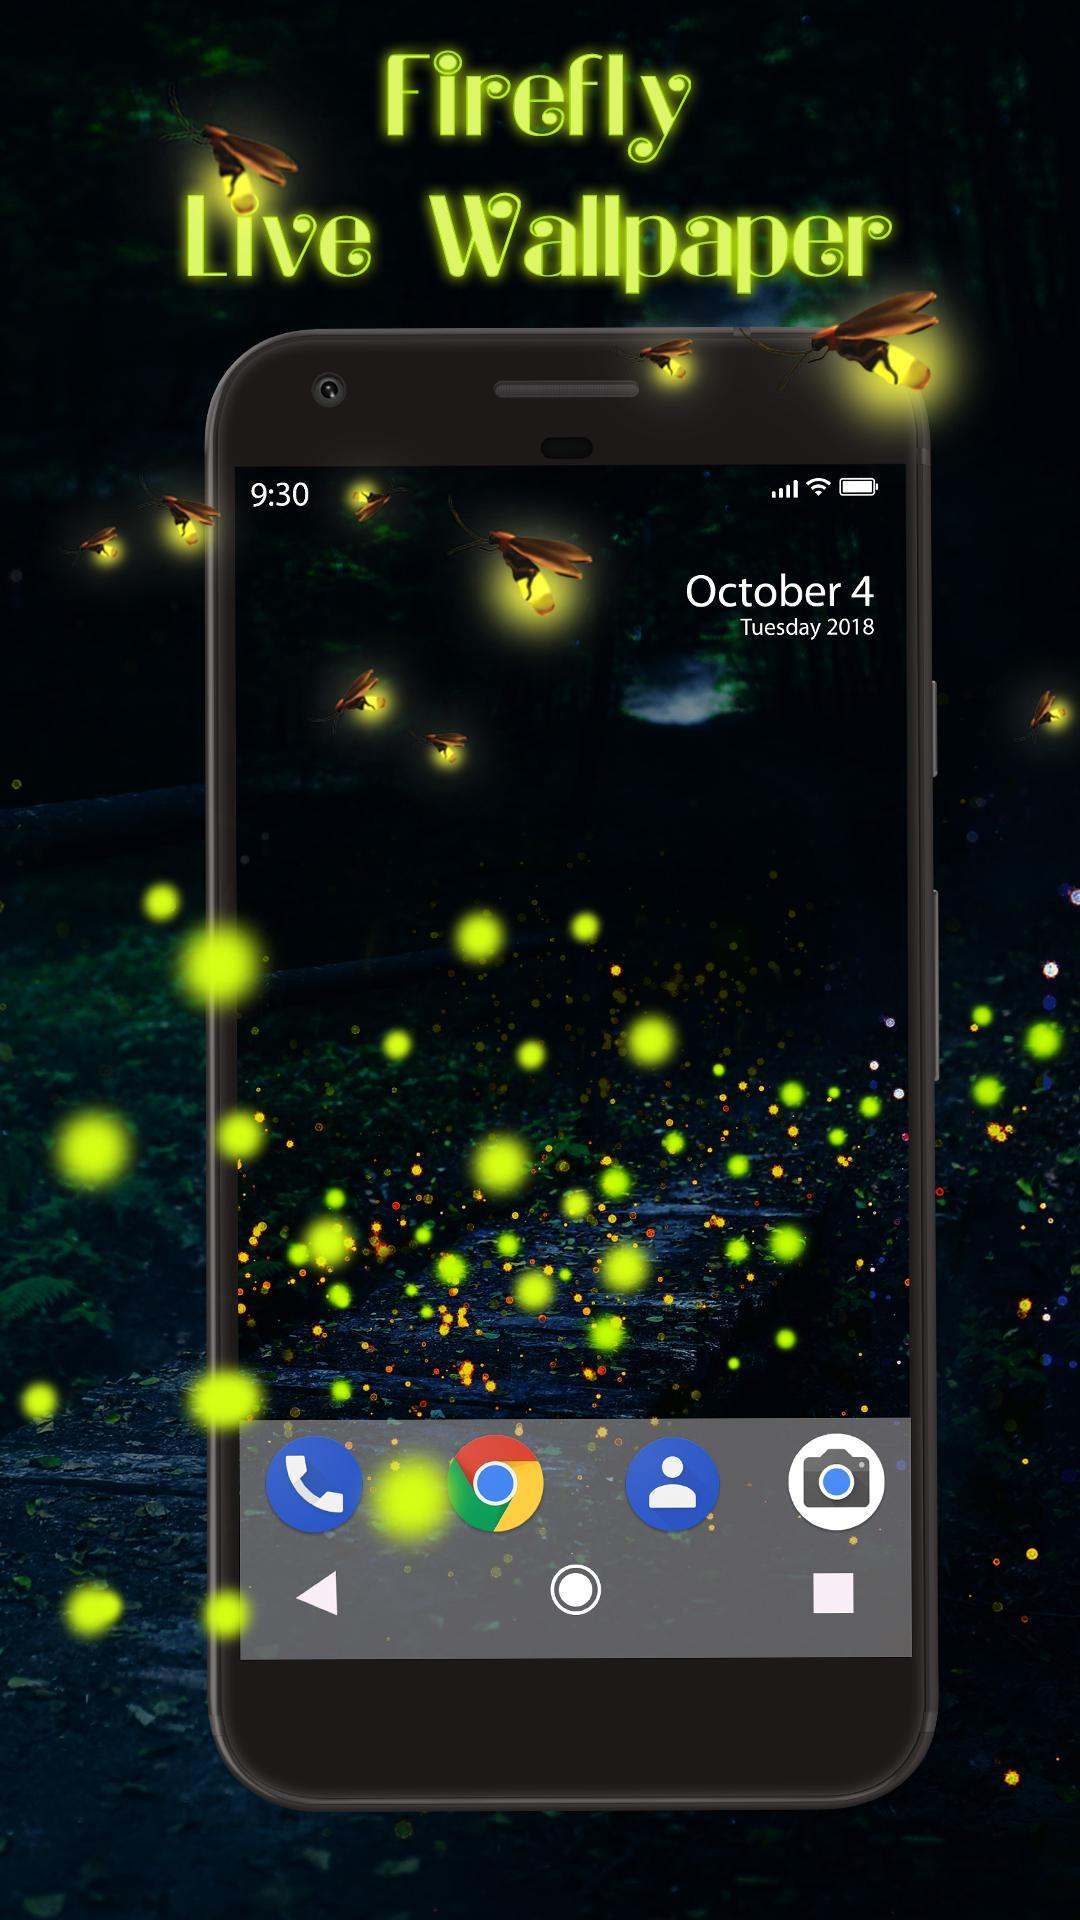 Firefly APUS Live Wallpaper for Android - APK Download